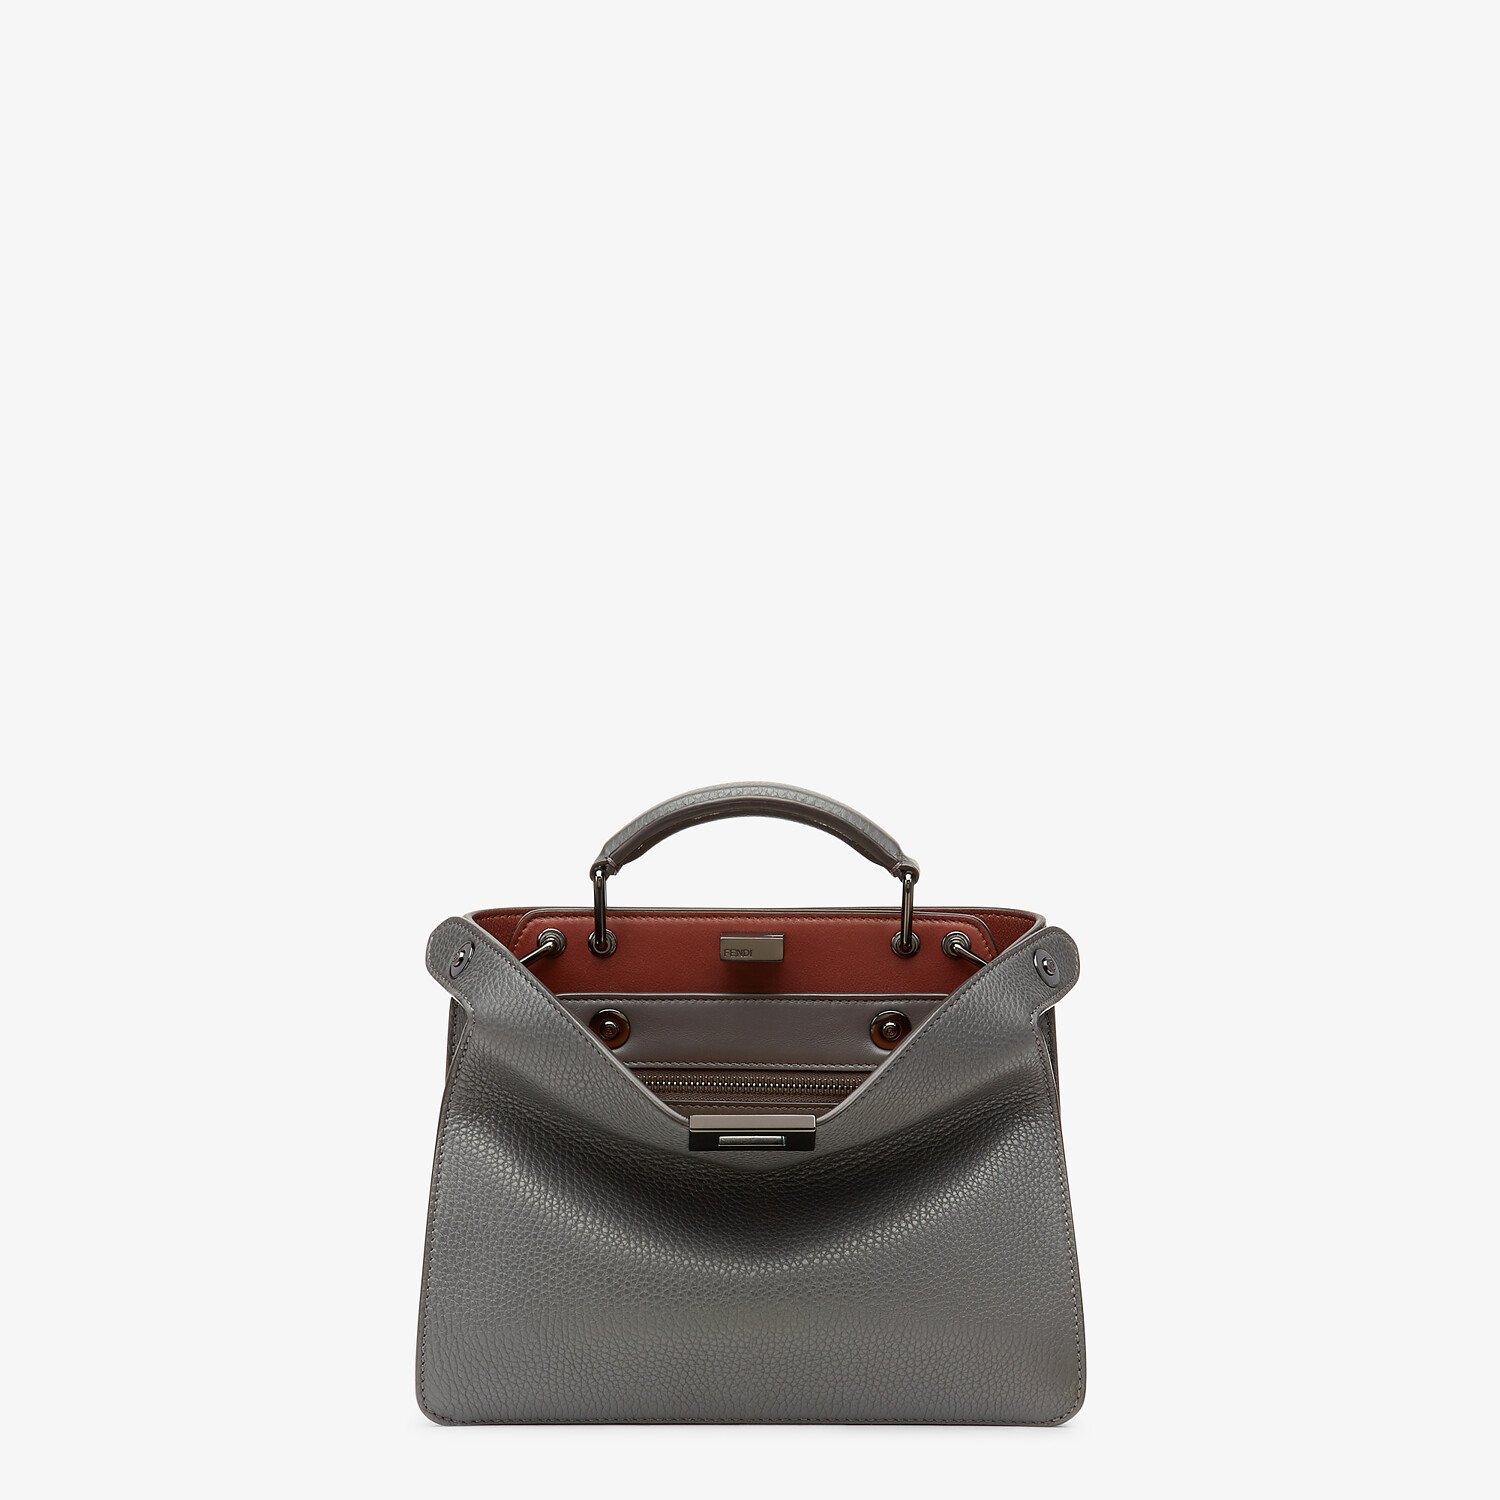 FENDI PEEKABOO ISEEU MINI - Gray leather bag - view 1 detail